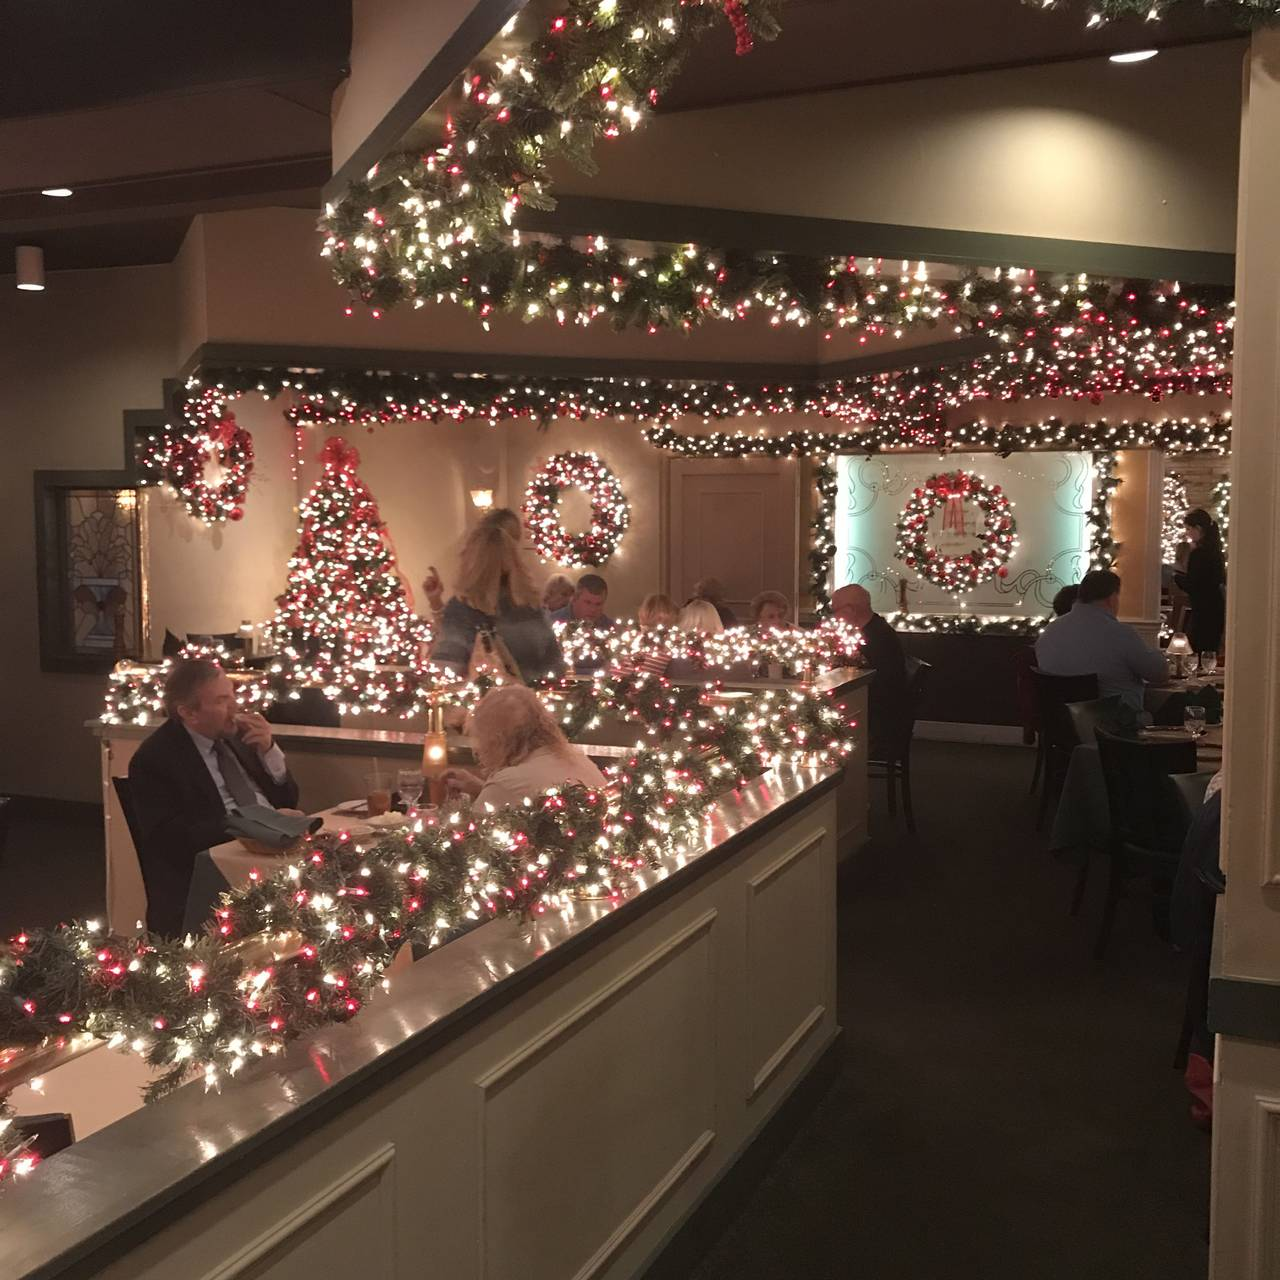 sams steakhouse restaurant st louis mo opentable - Is Sams Club Open On Christmas Eve